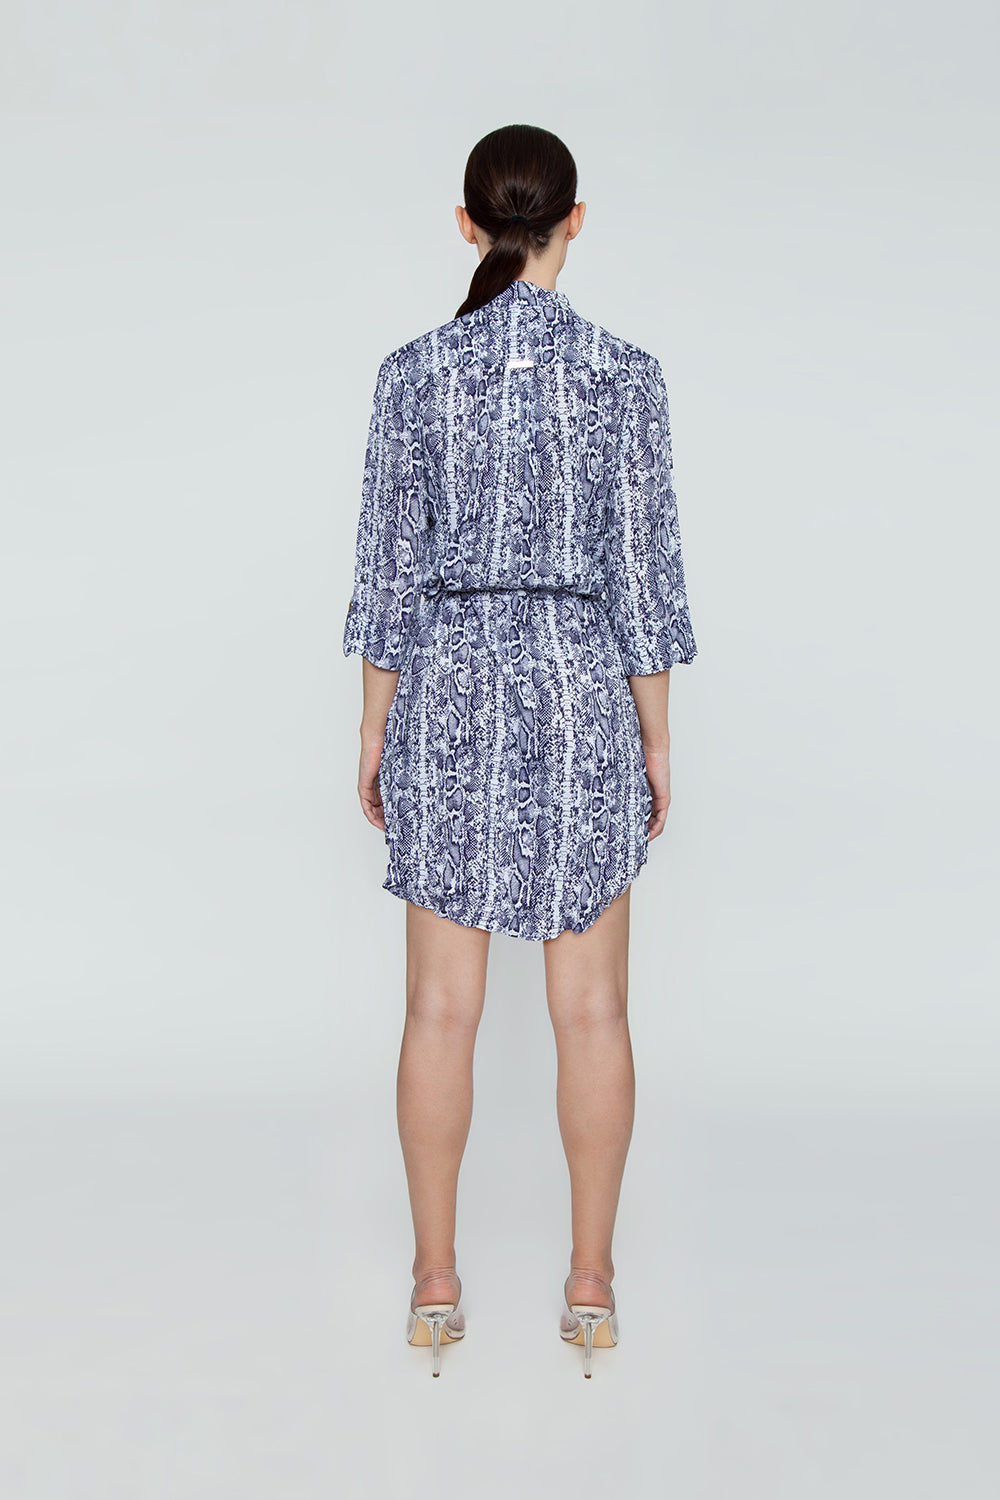 HEIDI KLEIN Relaxed Shirt Dress - Blue Animal Print Dress | Blue Animal Print| Heidi Klein Relaxed Shirt Dress - Blue Animal Print. Features:  A rounded hem that dips at the back and a drawstring for an adjustable fit and a flattering silhouette. Neat fitting on the shoulders with slightly shaped side seams.   Sleeves can be worn long or tacked up with sleeve tabs for versatility. Back View